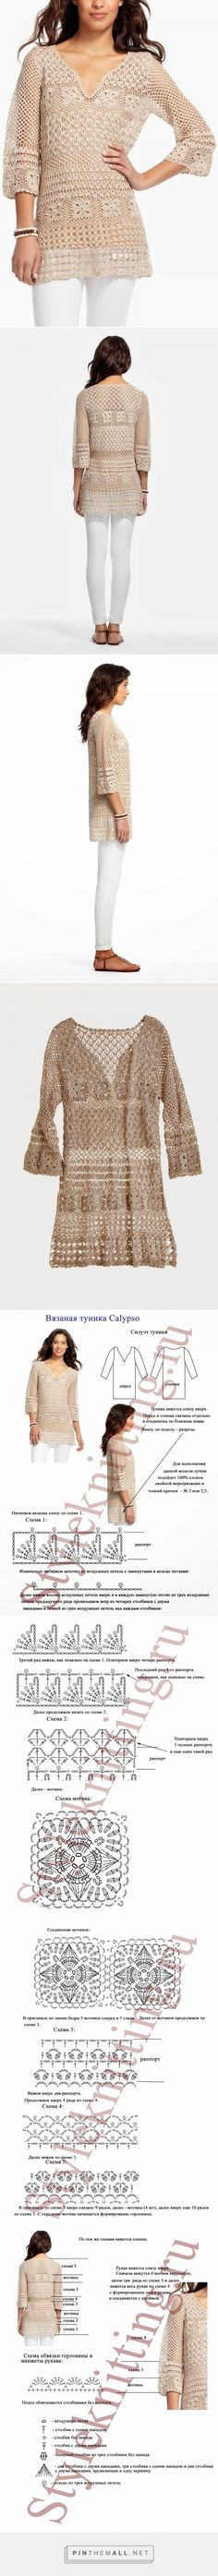 Crochet Patterns to Try: Crochet Charts for Calypso Tunic - Something to Mend a Bad Day - created on 2016-04-25 21:53:26